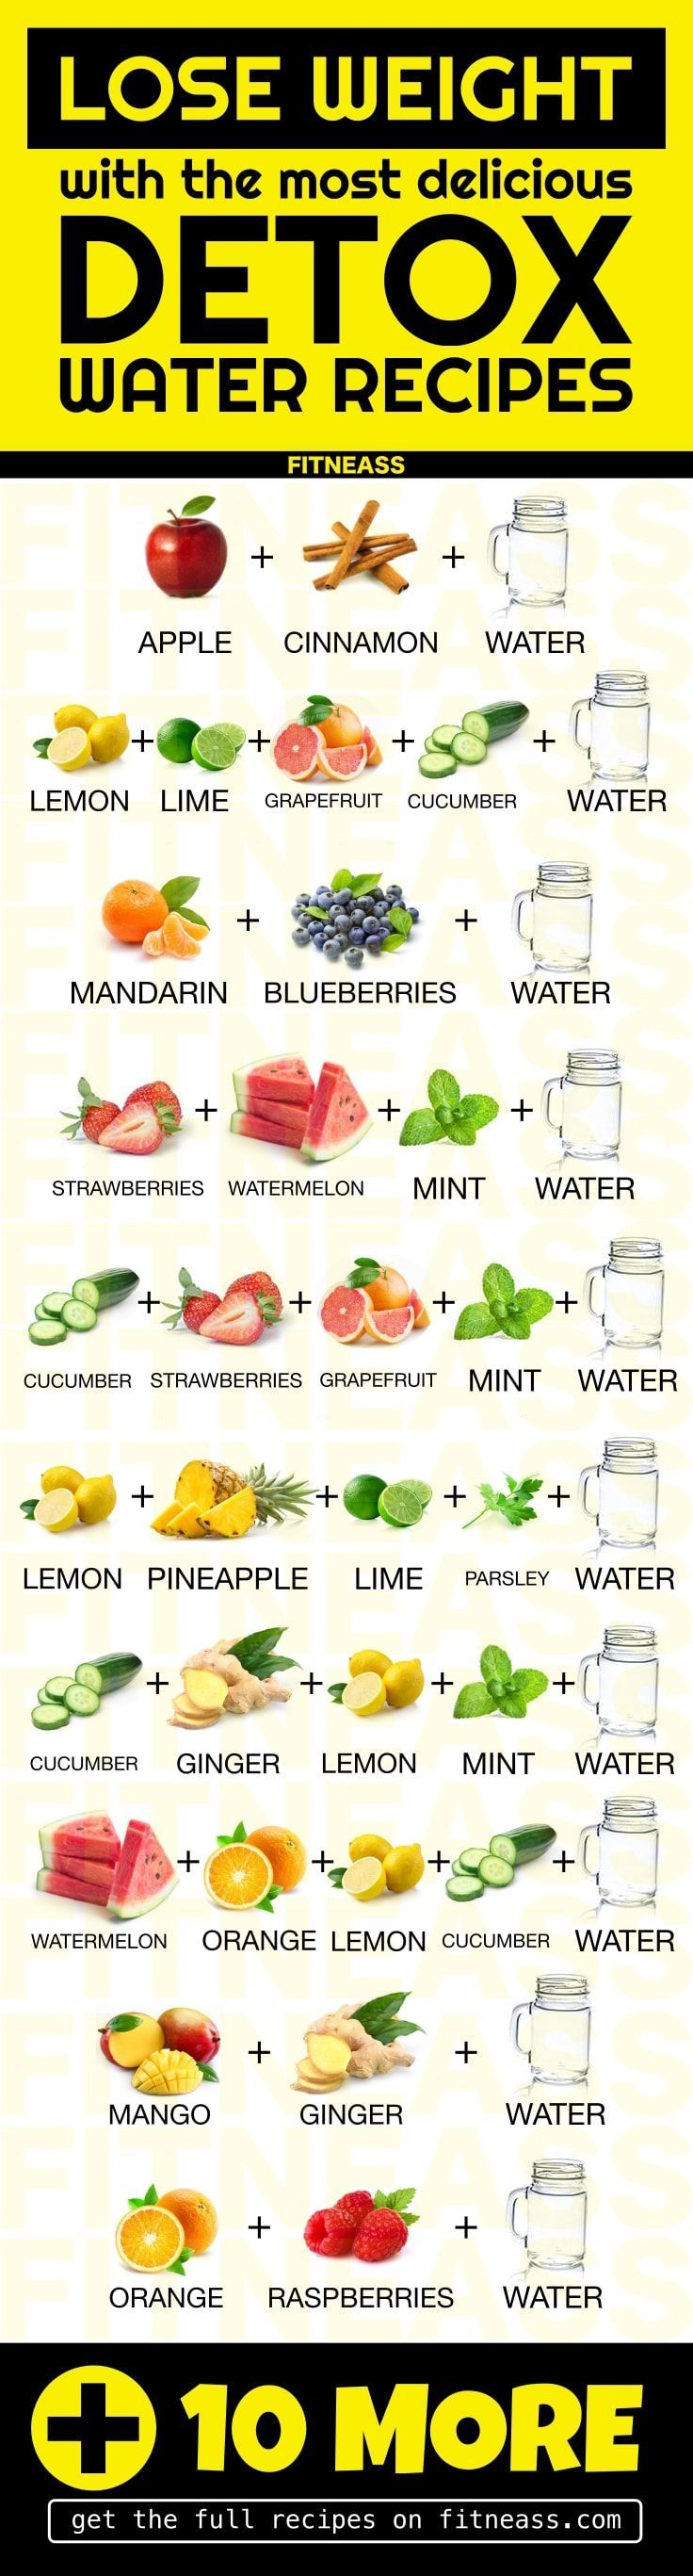 20 detox water recipes to lose weight and flush out toxins. Black Bedroom Furniture Sets. Home Design Ideas